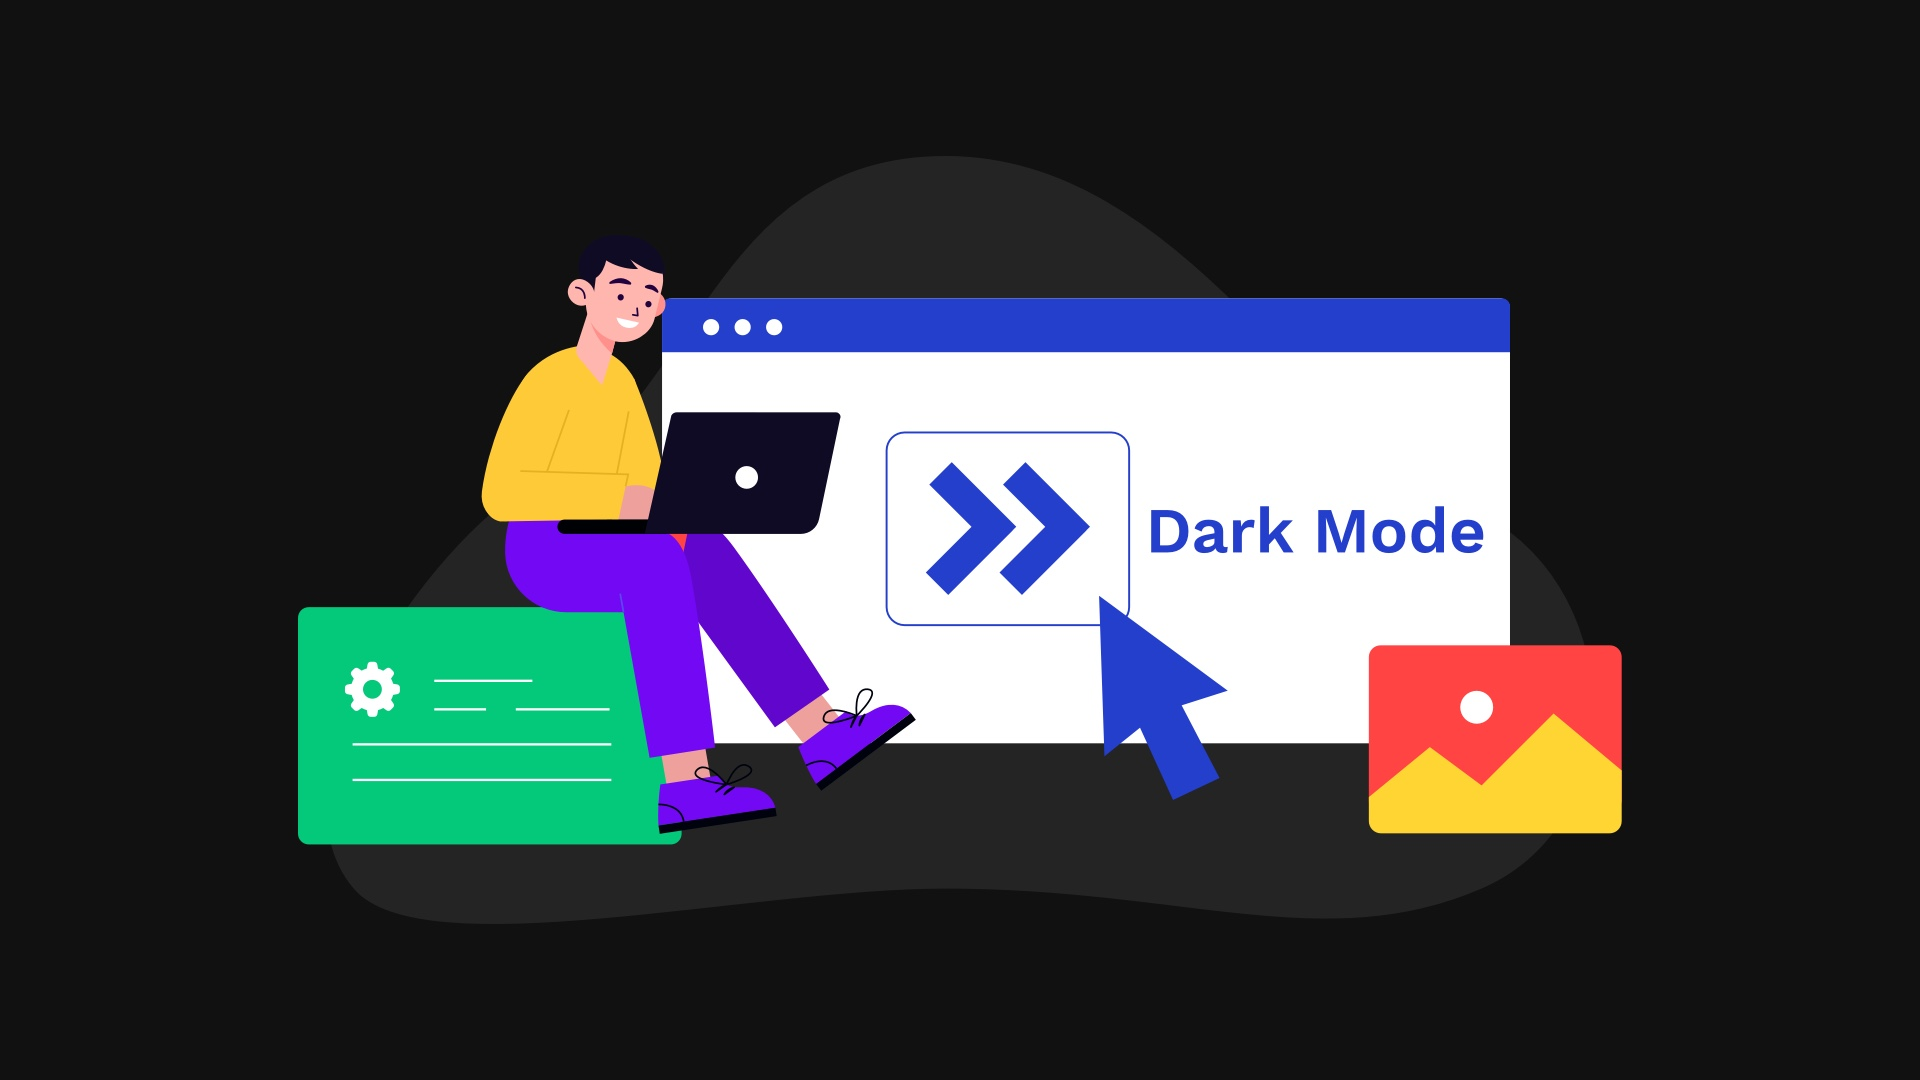 How to implement dark mode in frontity